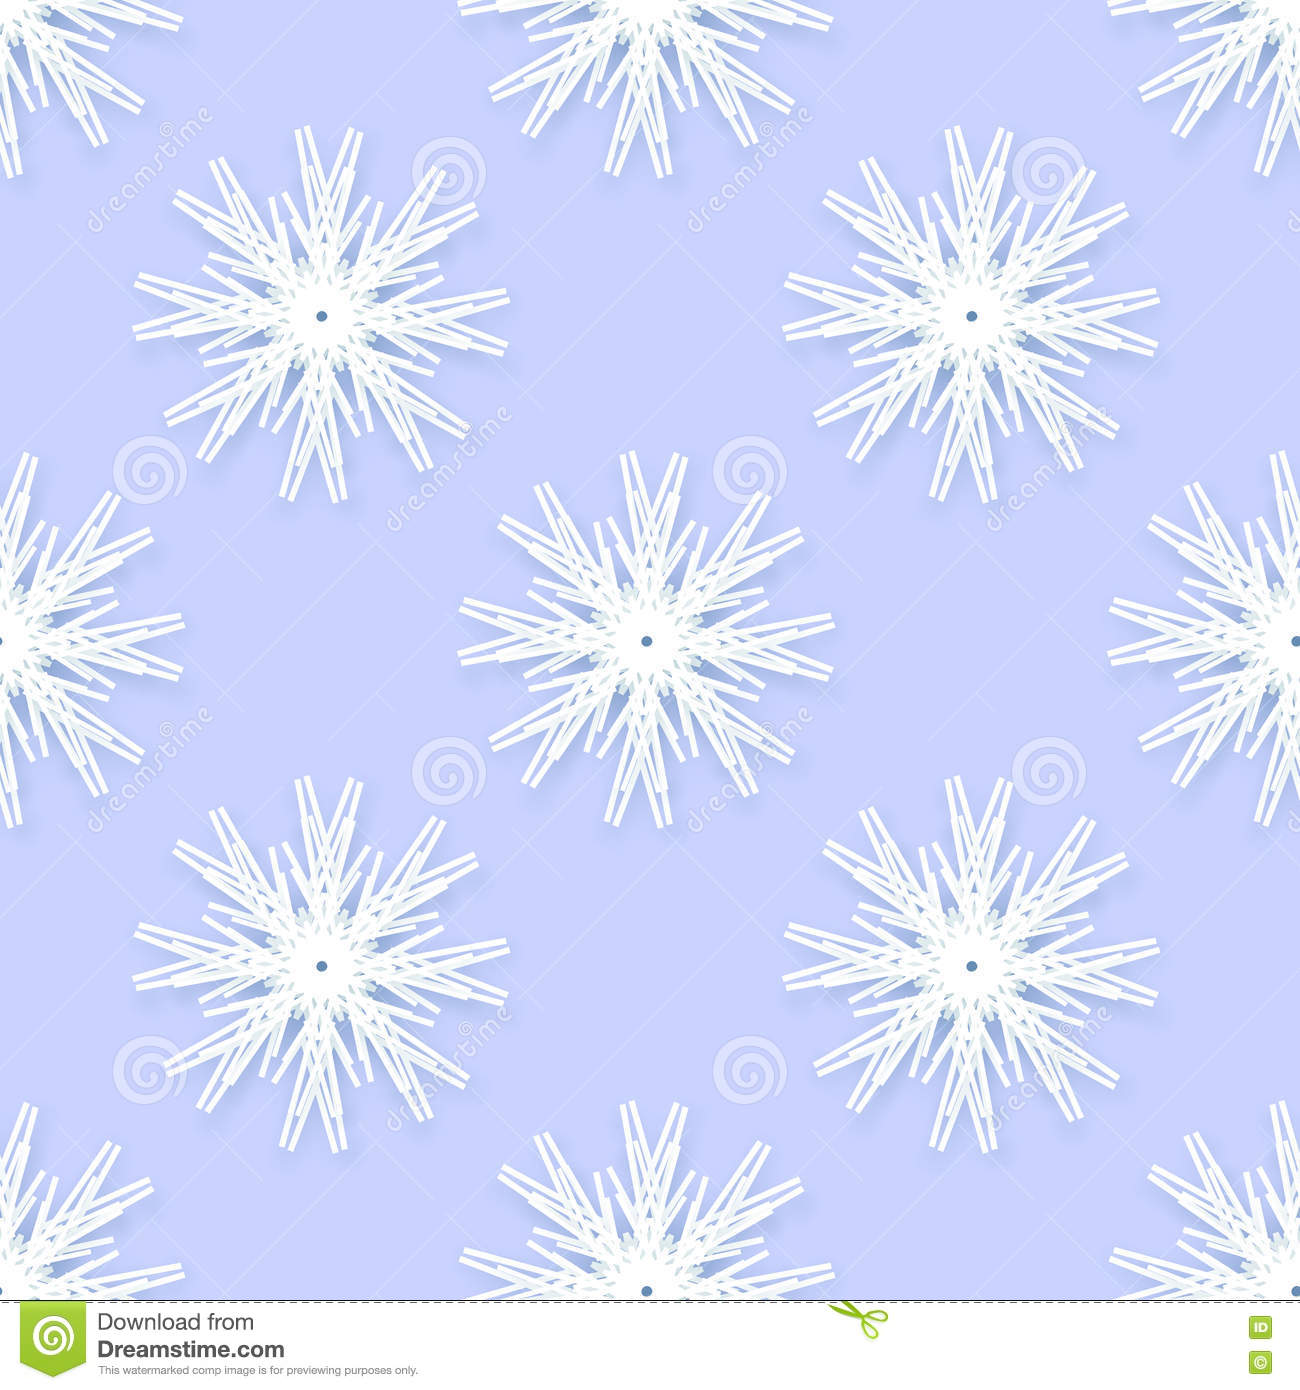 Origami Snowflakes Seamless Pattern On Blue Background Stock Vector